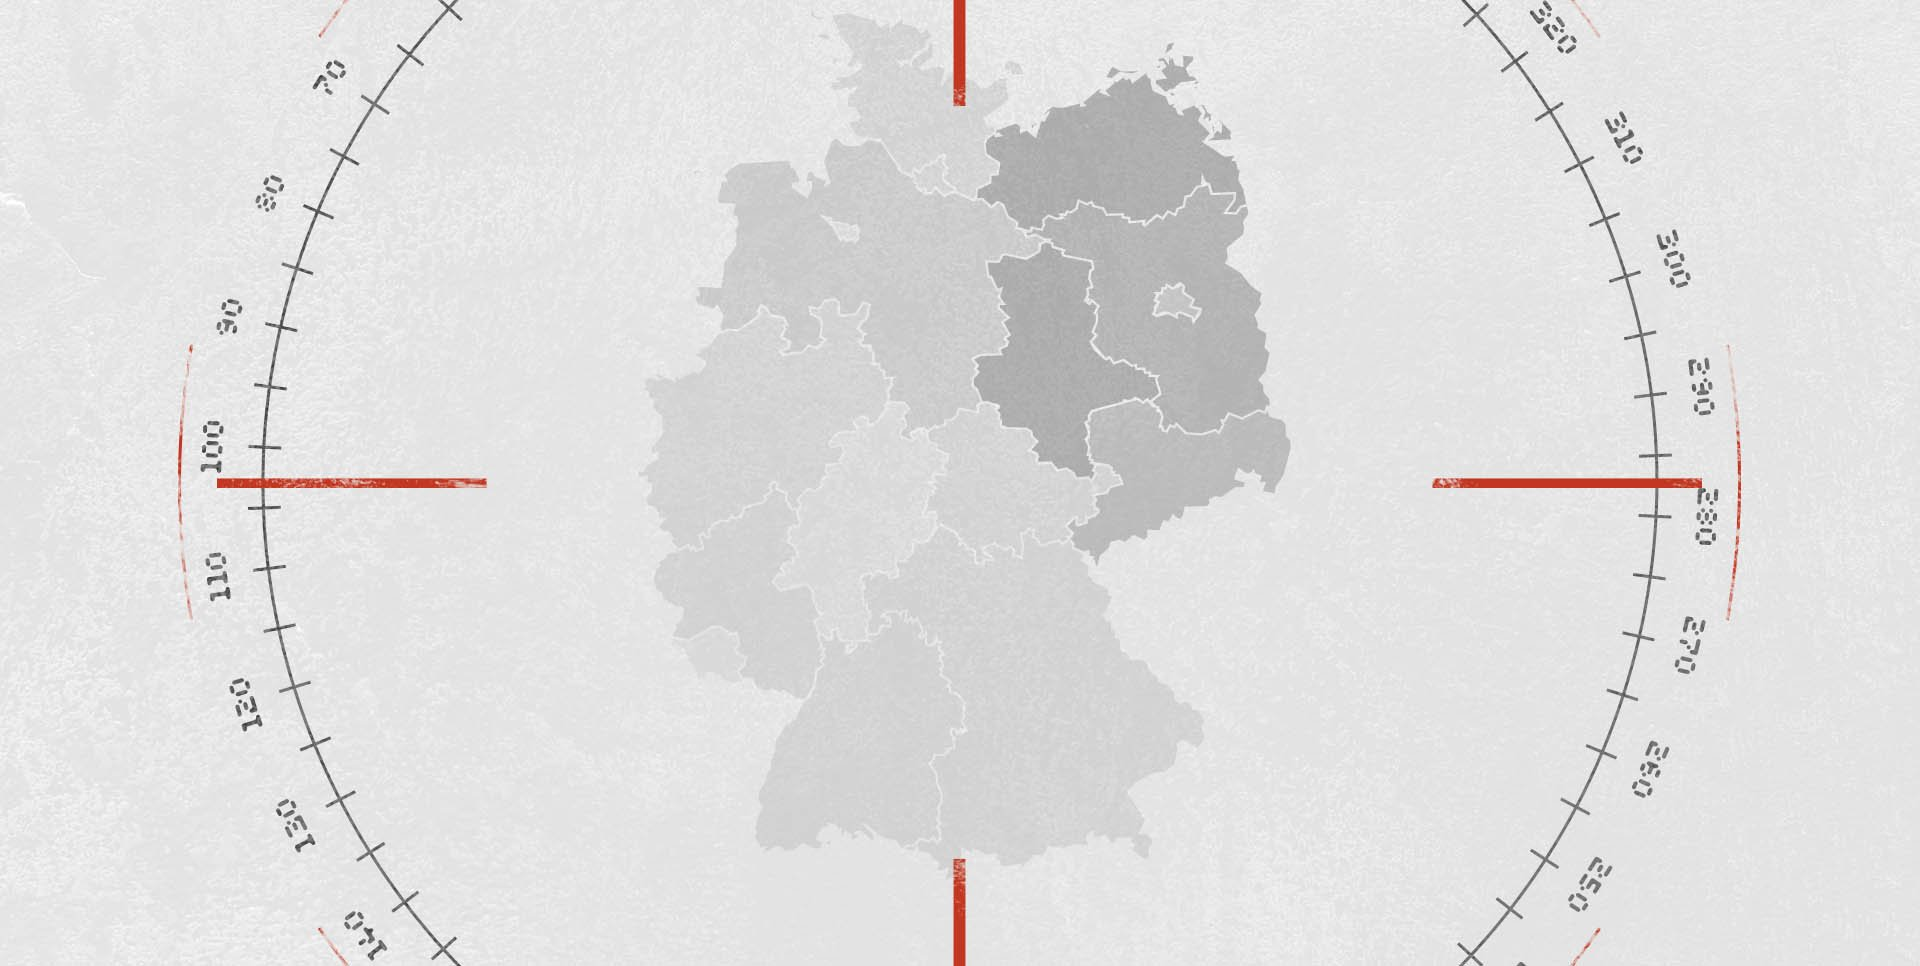 Die Gewalt gegen Politiker in Deutschland erreicht eine bedenkliche Dimension. Unsere Datenanalyse: https://t.co/Fsjo8zs8GW #ddj #PMK https://t.co/1vuBLFf1HP